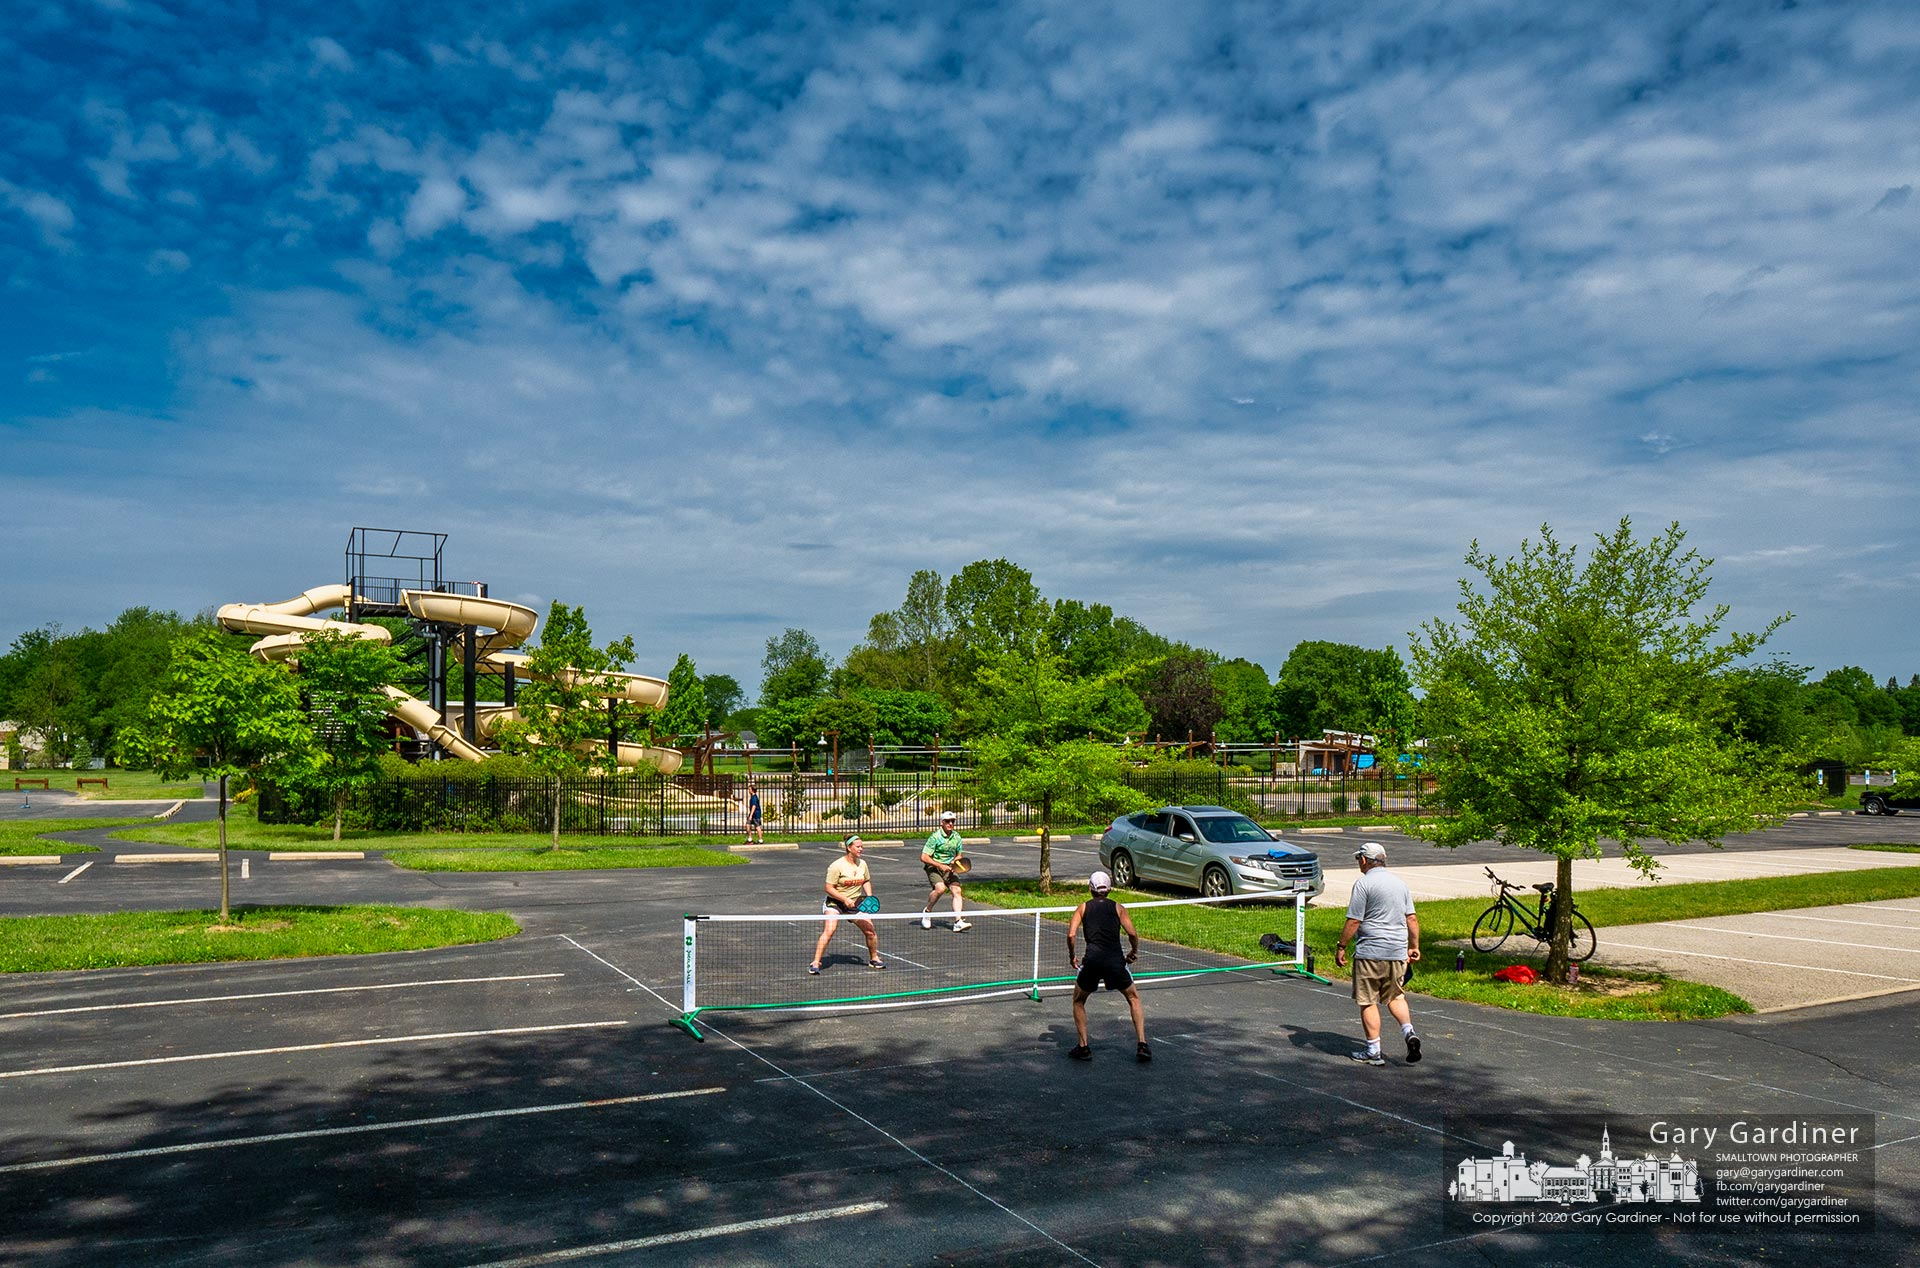 A foursome uses a section of the Highlands Pool parking lot as their private pickleball court taking advantage of the pool being closed because of the coronavirus pandemic. My Final Photo for May 27, 2020.